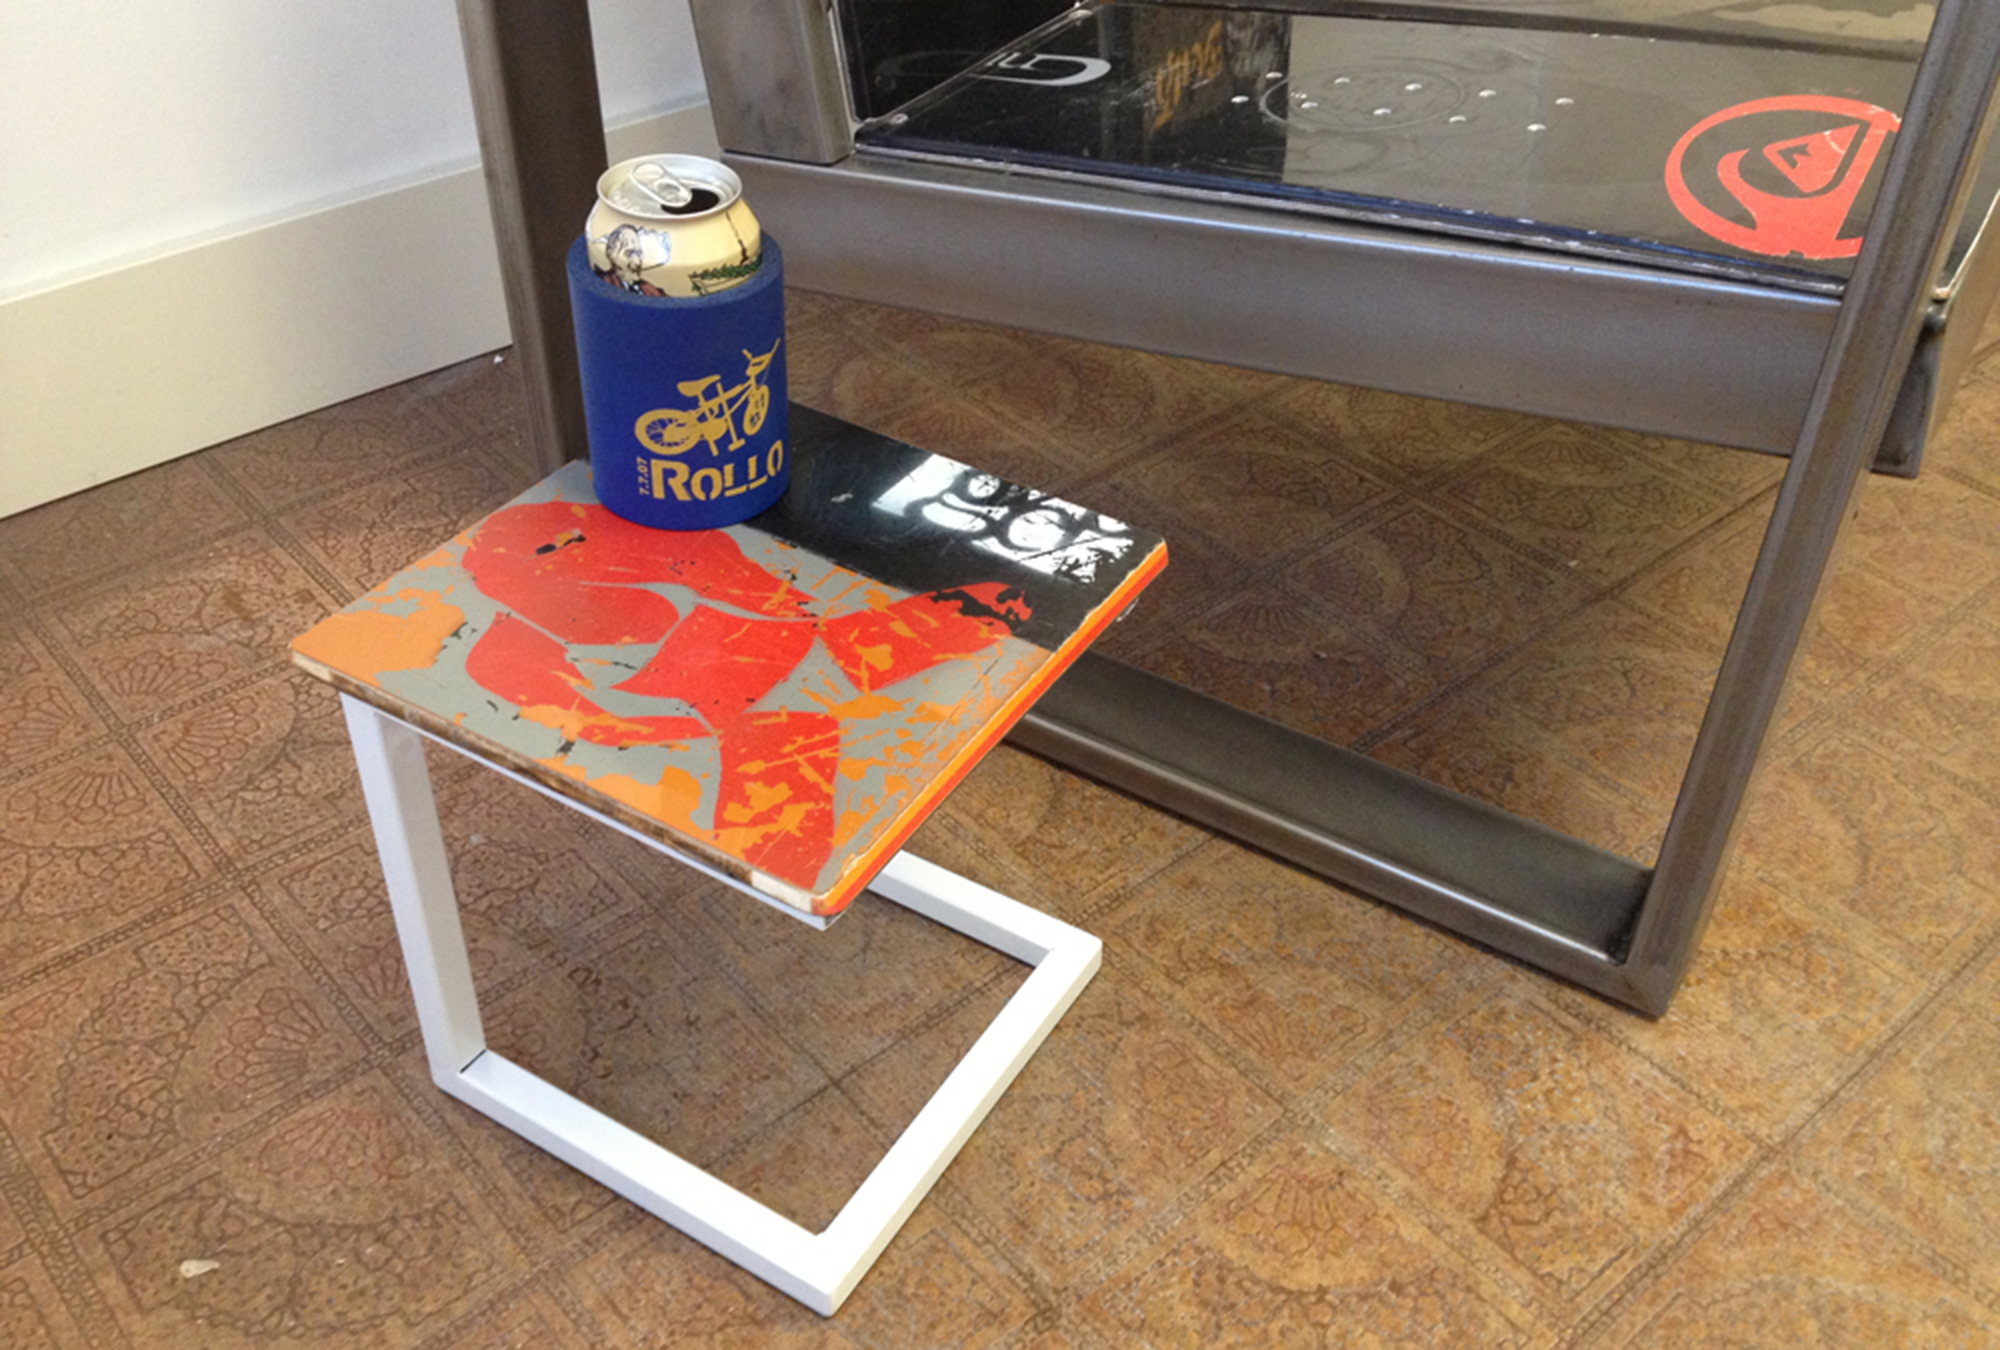 upcycled recycled snowboard burton table furniture